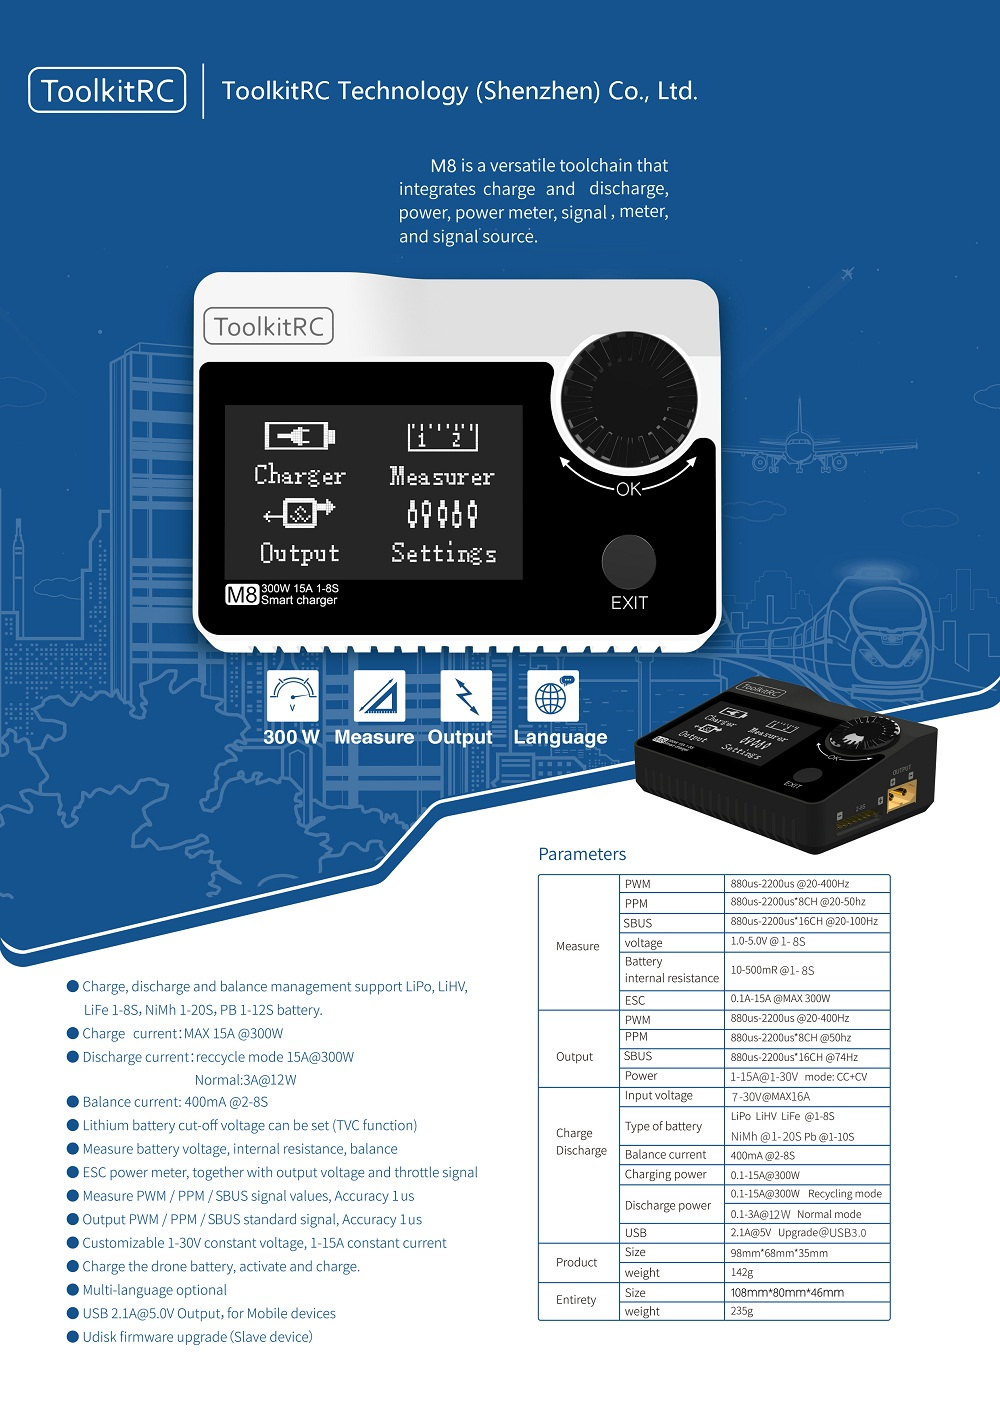 RONSHIN Automotive Electronic Accessories,TPMS Solar Wireless Tire Pressure LCD Monitoring System with 4 External Sensor